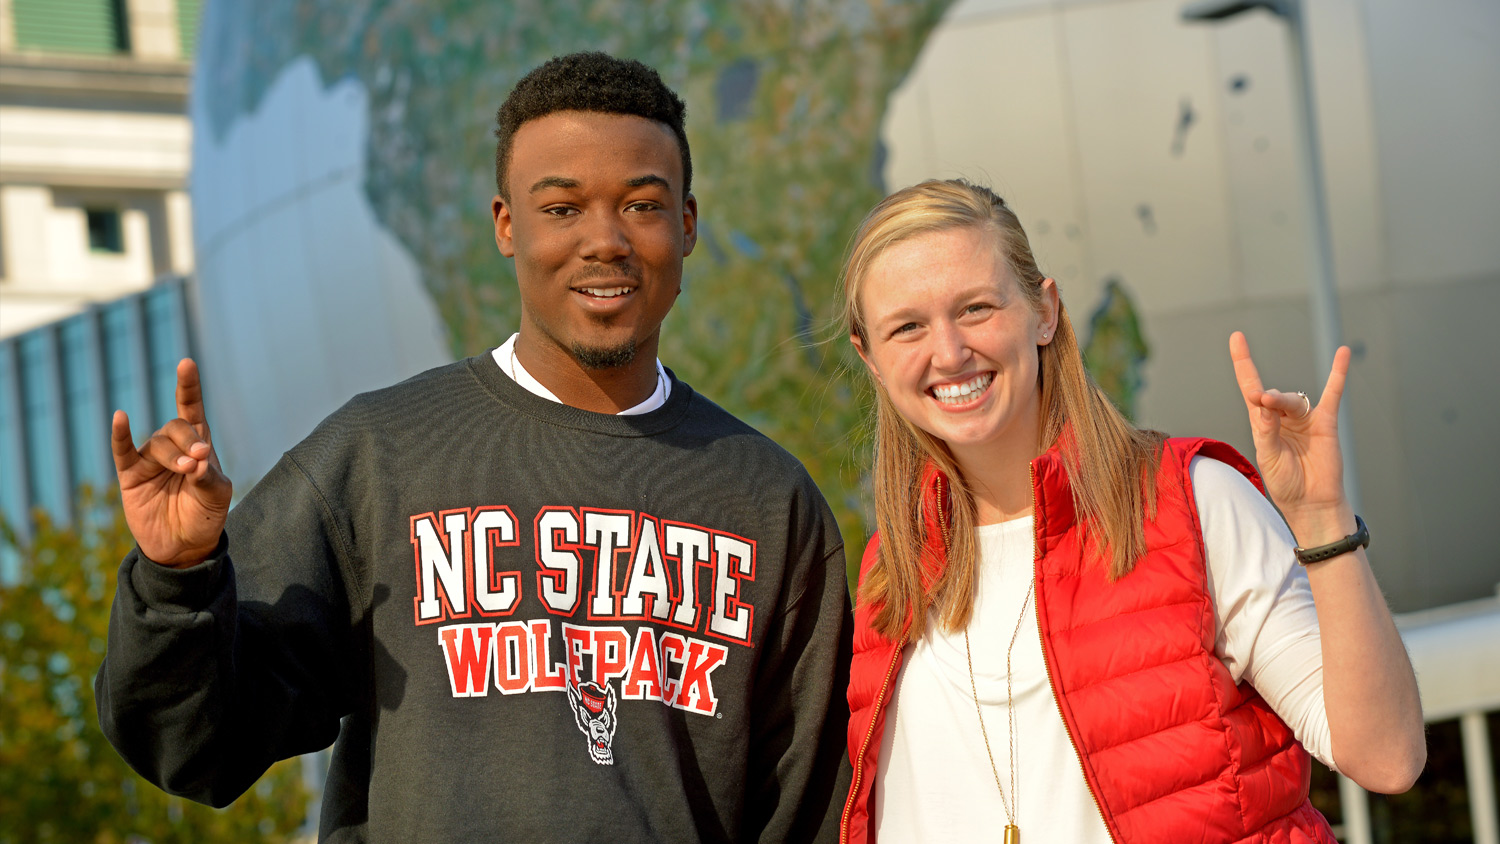 Wolfpack Pose - Undergraduate -Parks Recreation and Tourism Management NC State